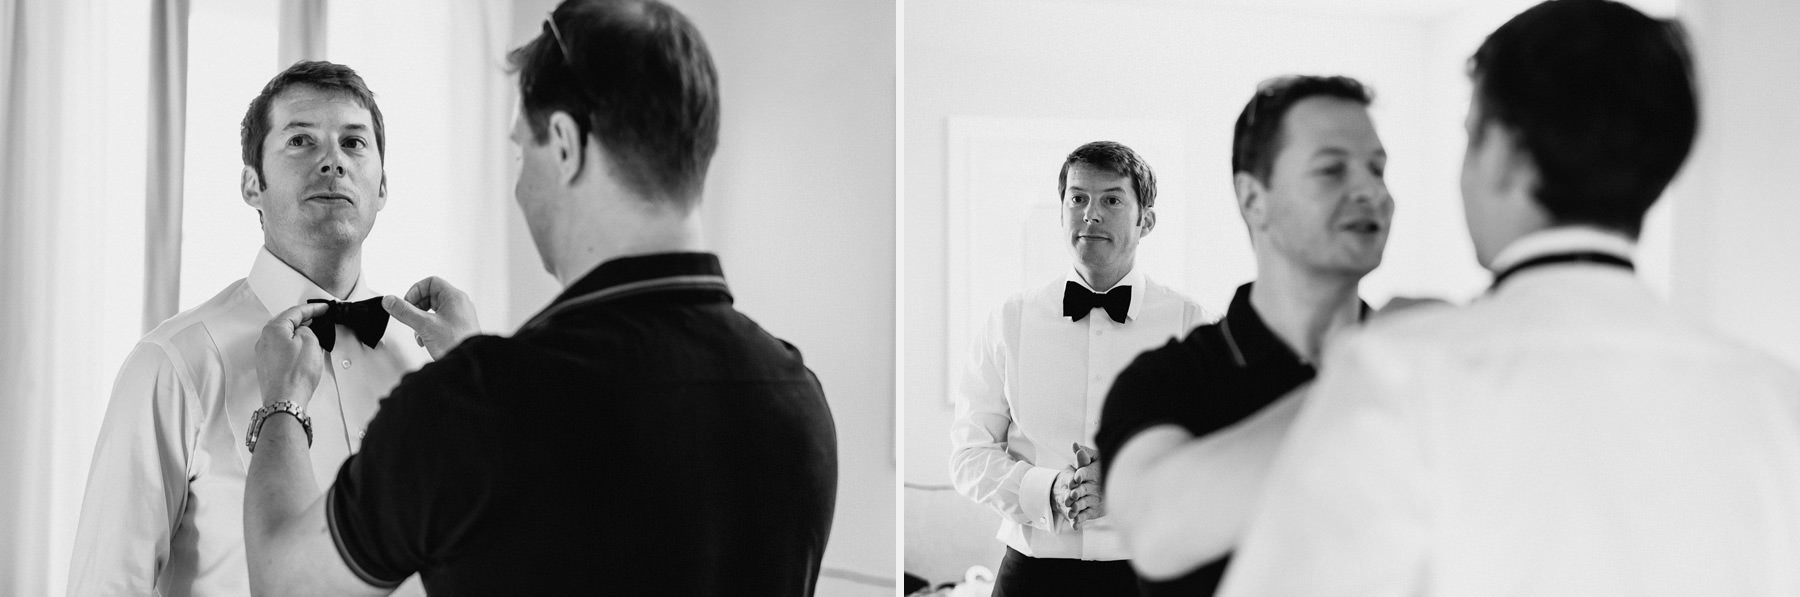 Siena wedding photographer borgo scopeto groom getting ready